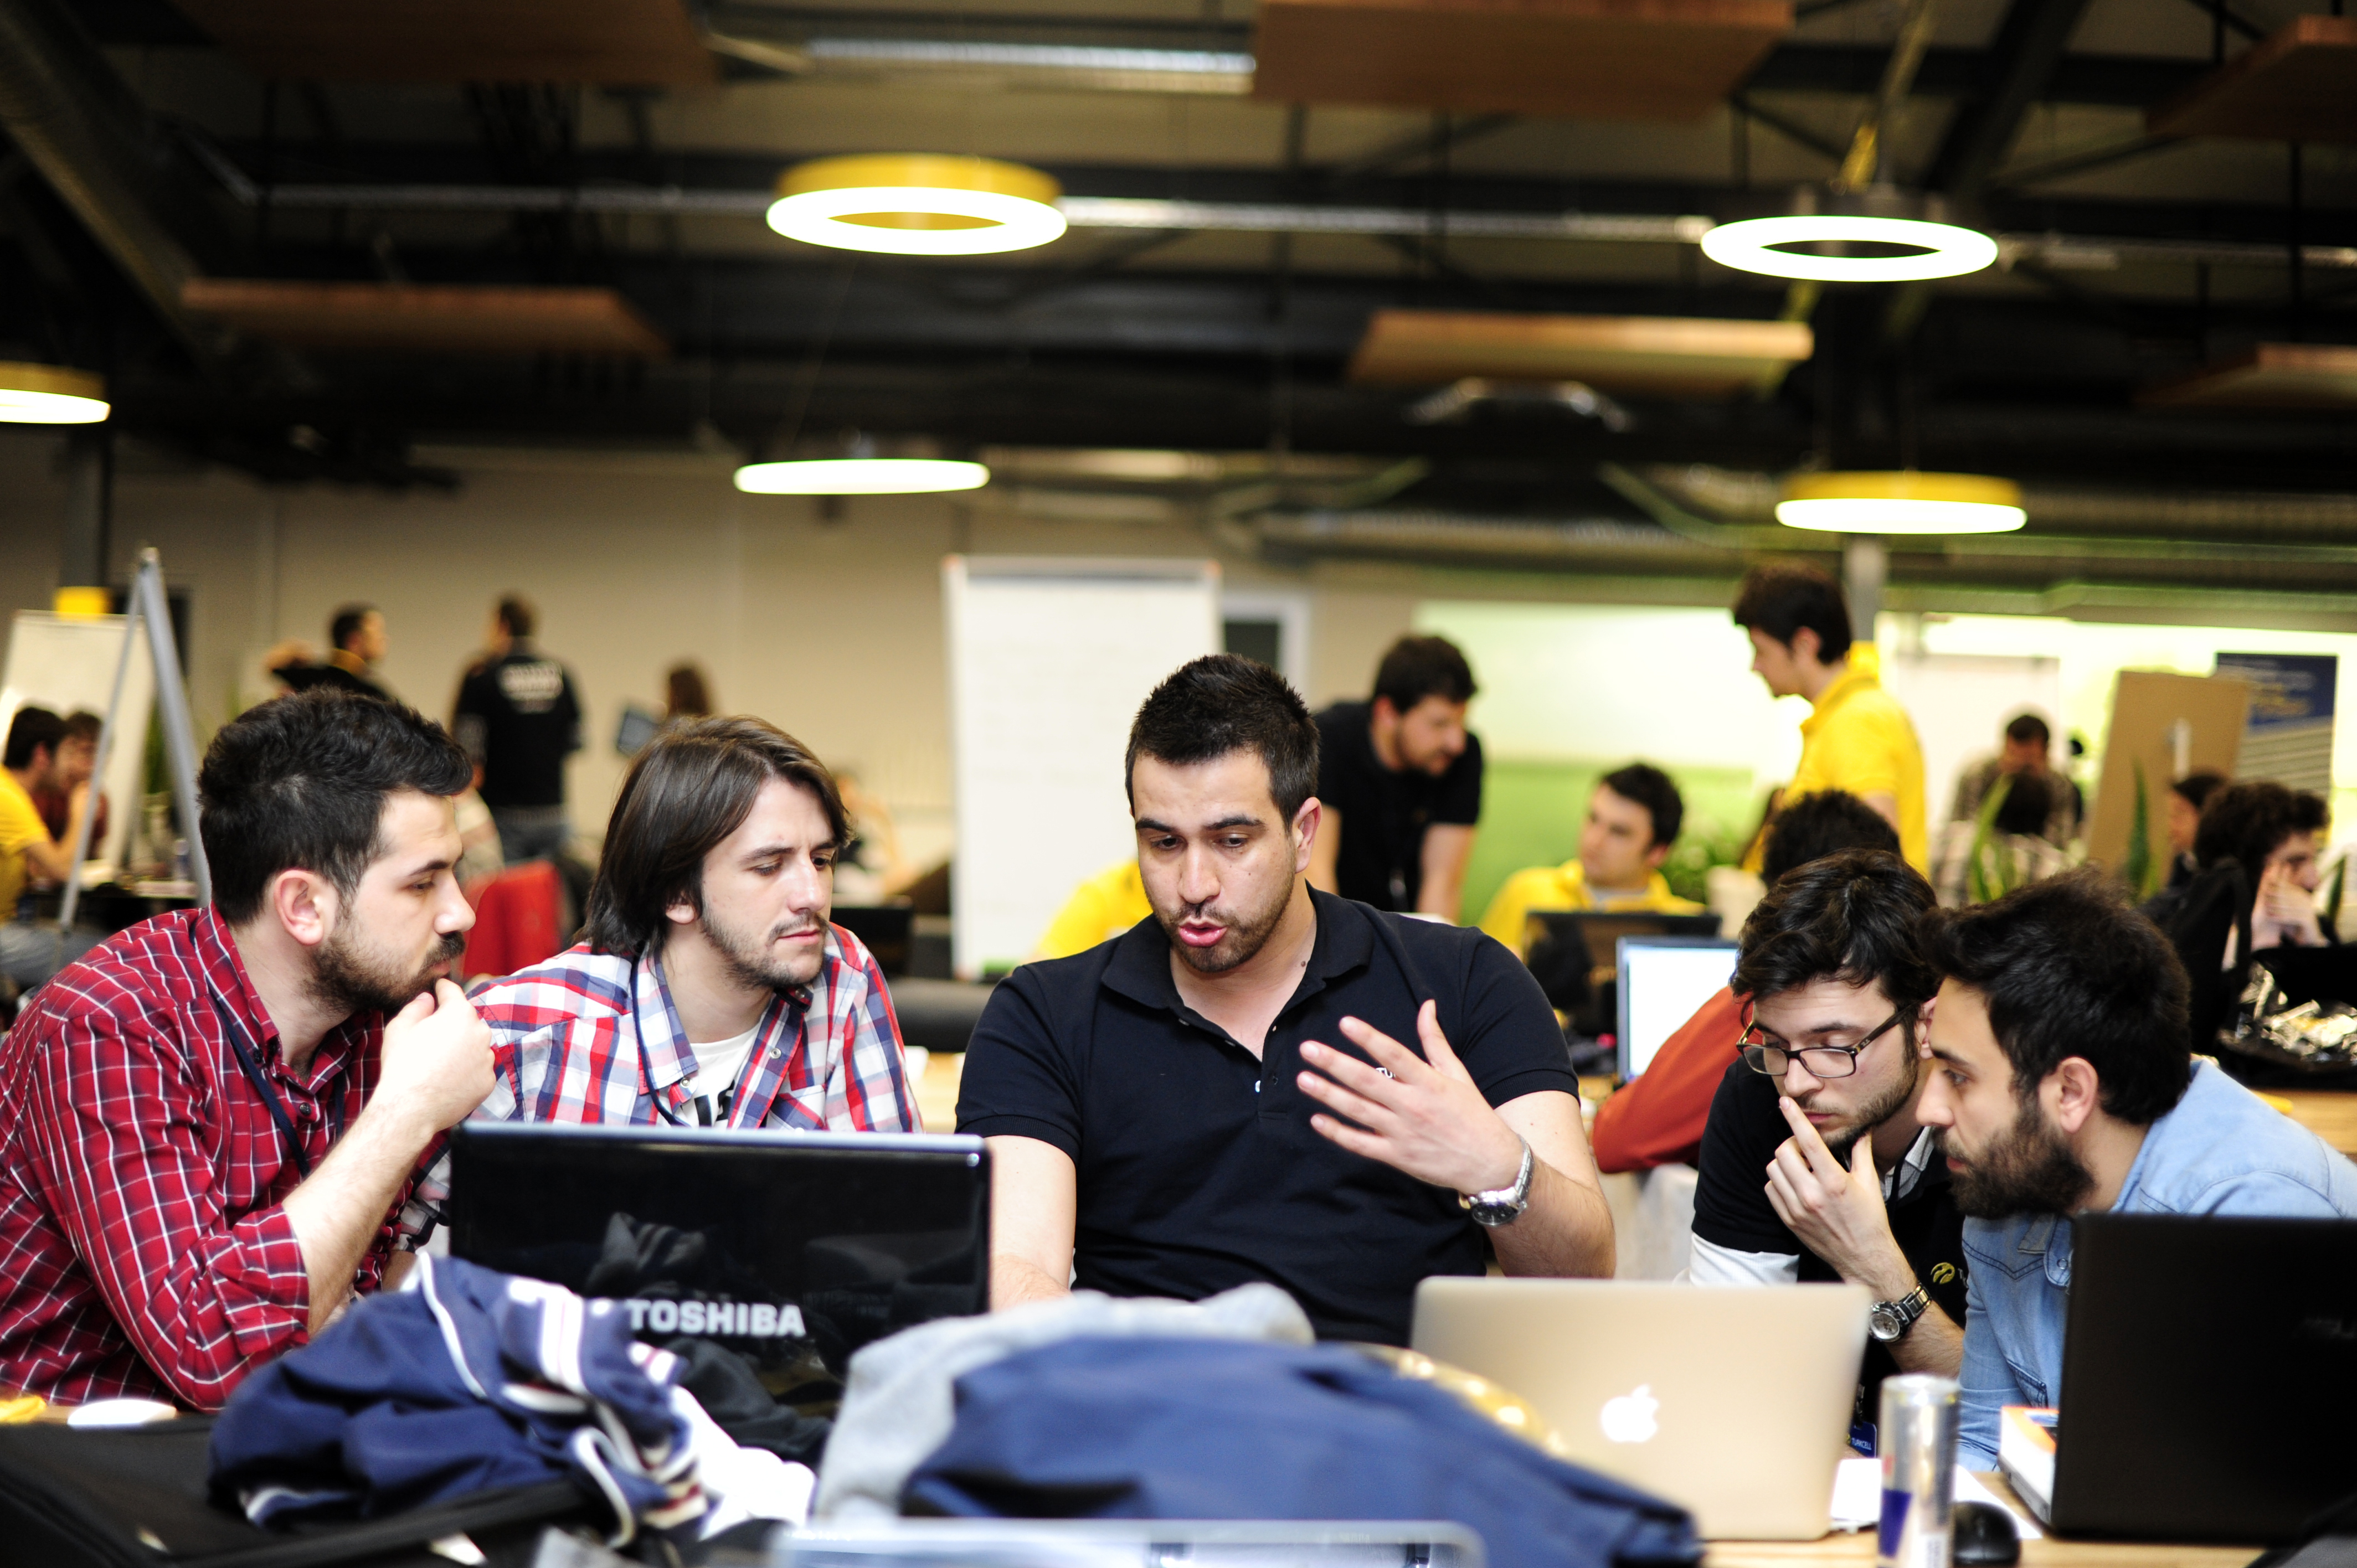 153 developers at Turkcell's App Marathon Coding Weekend took more than 200 selfies. More than 1600 cups of coffee and 960 slices of pizza helped them survive the intense work. (Photo: Business Wire)